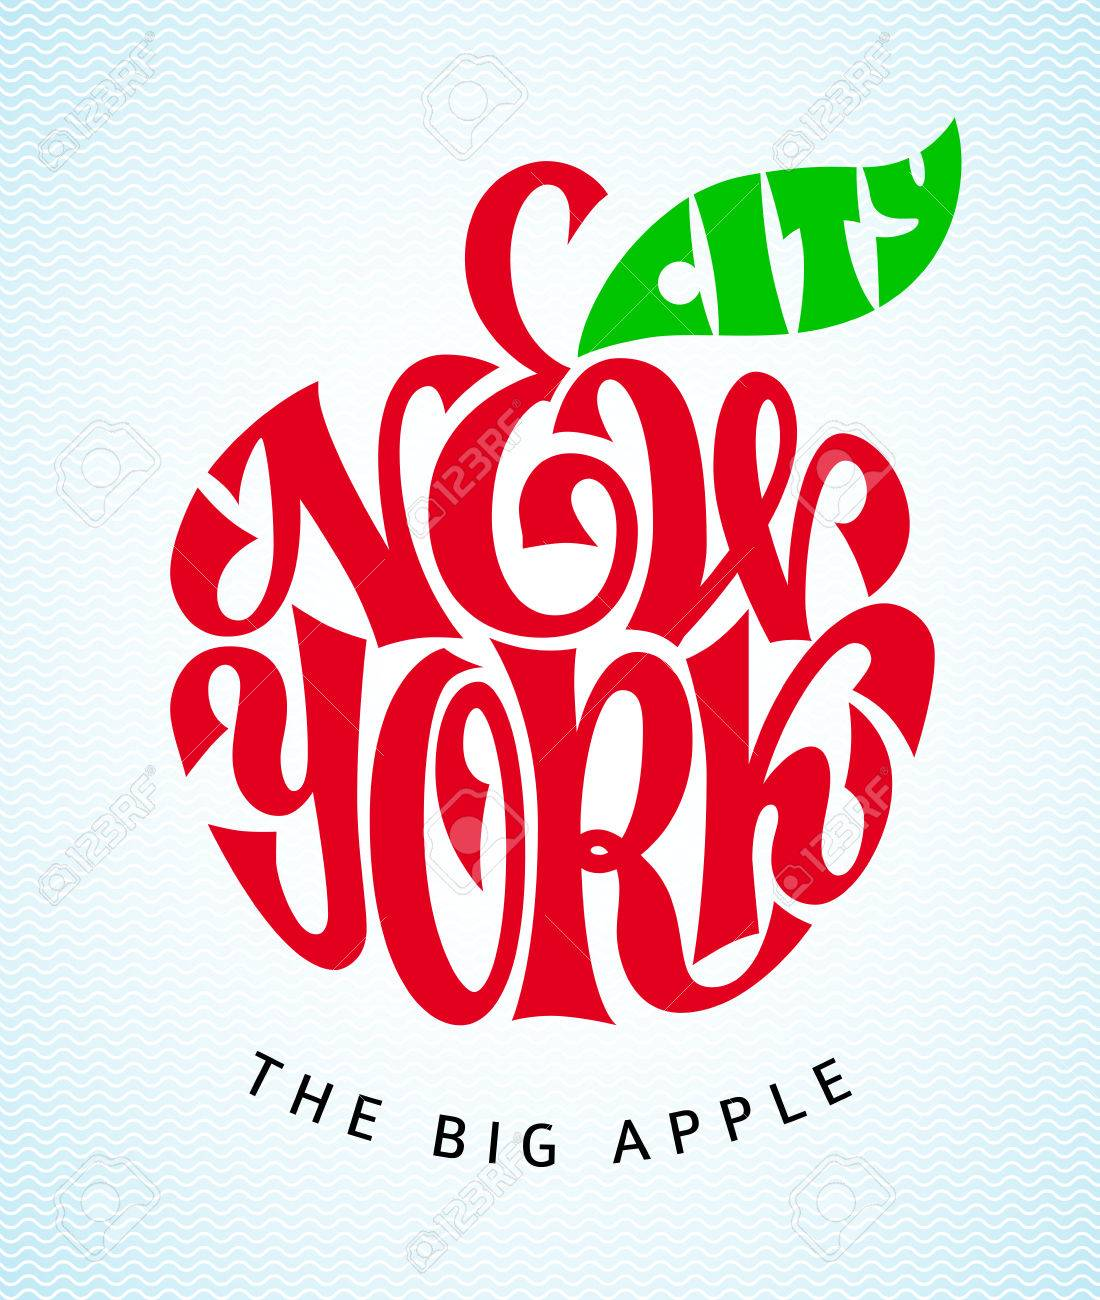 The words of the new york city entered in apple shape lettering the words of the new york city entered in apple shape lettering rgb publicscrutiny Choice Image